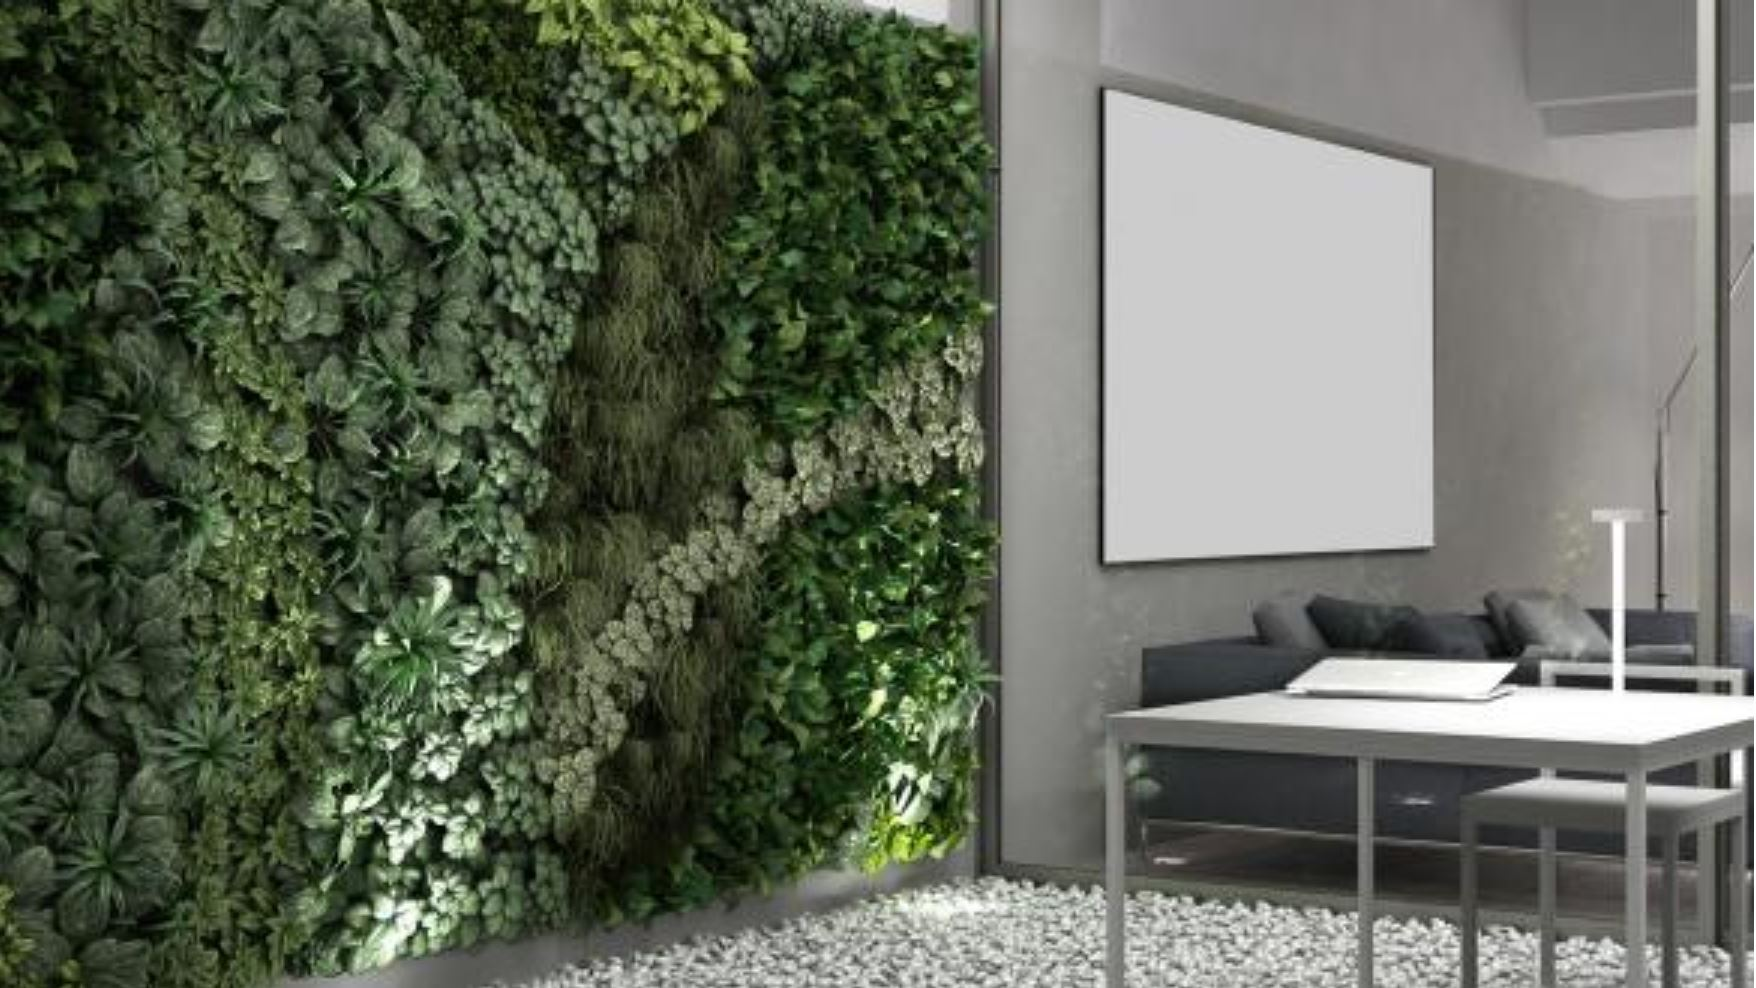 NAR Realtor Magazine 2020 01 09 What is trending a dozen home and design ideas for 2020 and beyond Hoey Team eXp Realty